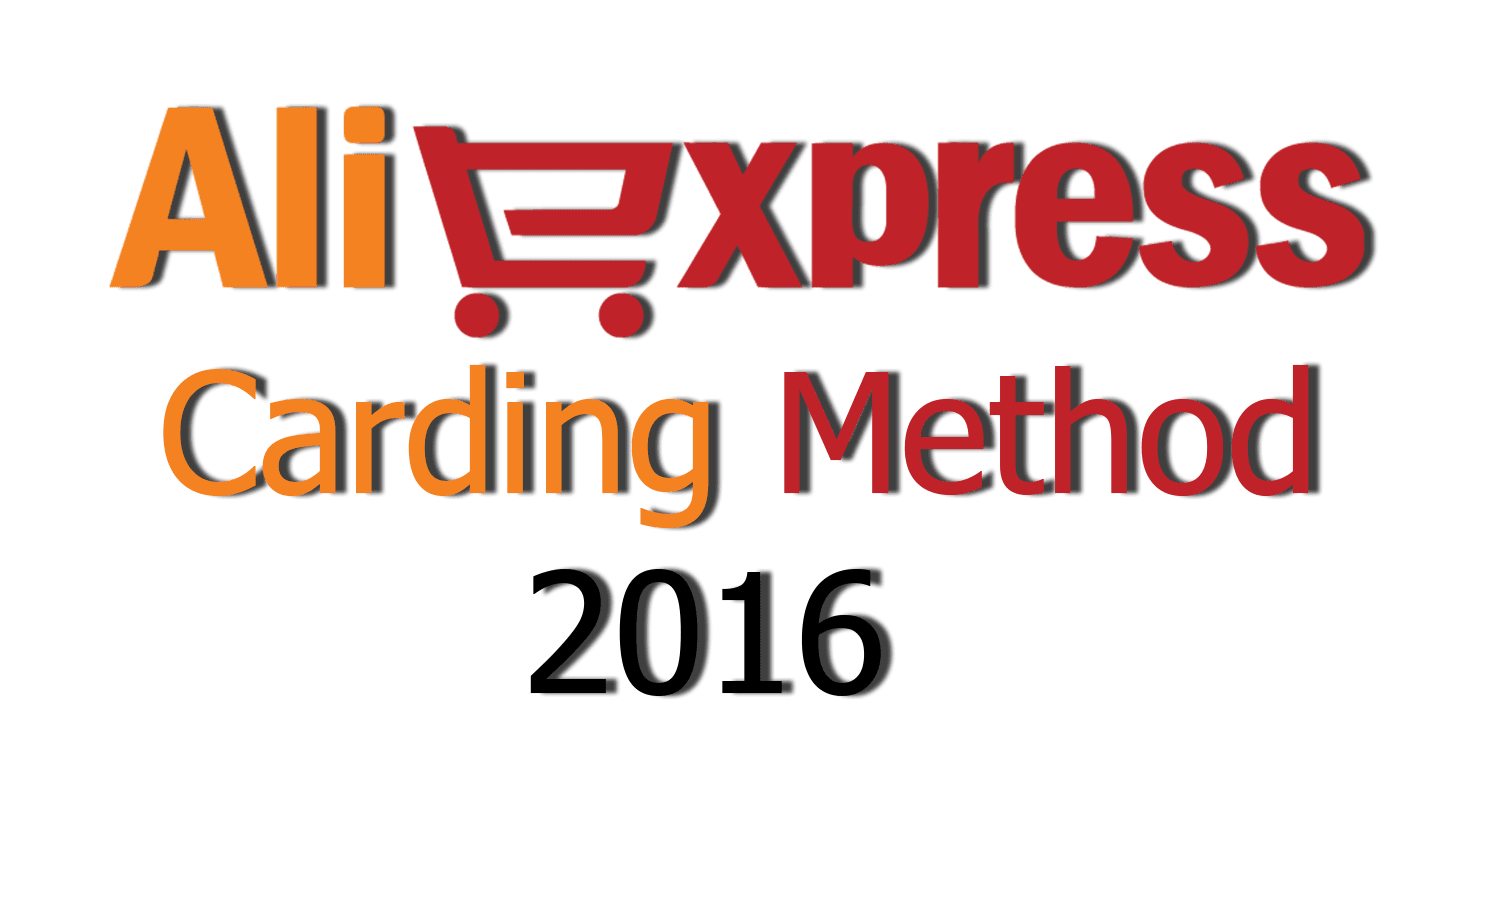 aliexpress carding tutorial and bin | APK APPS ANDROID 2017